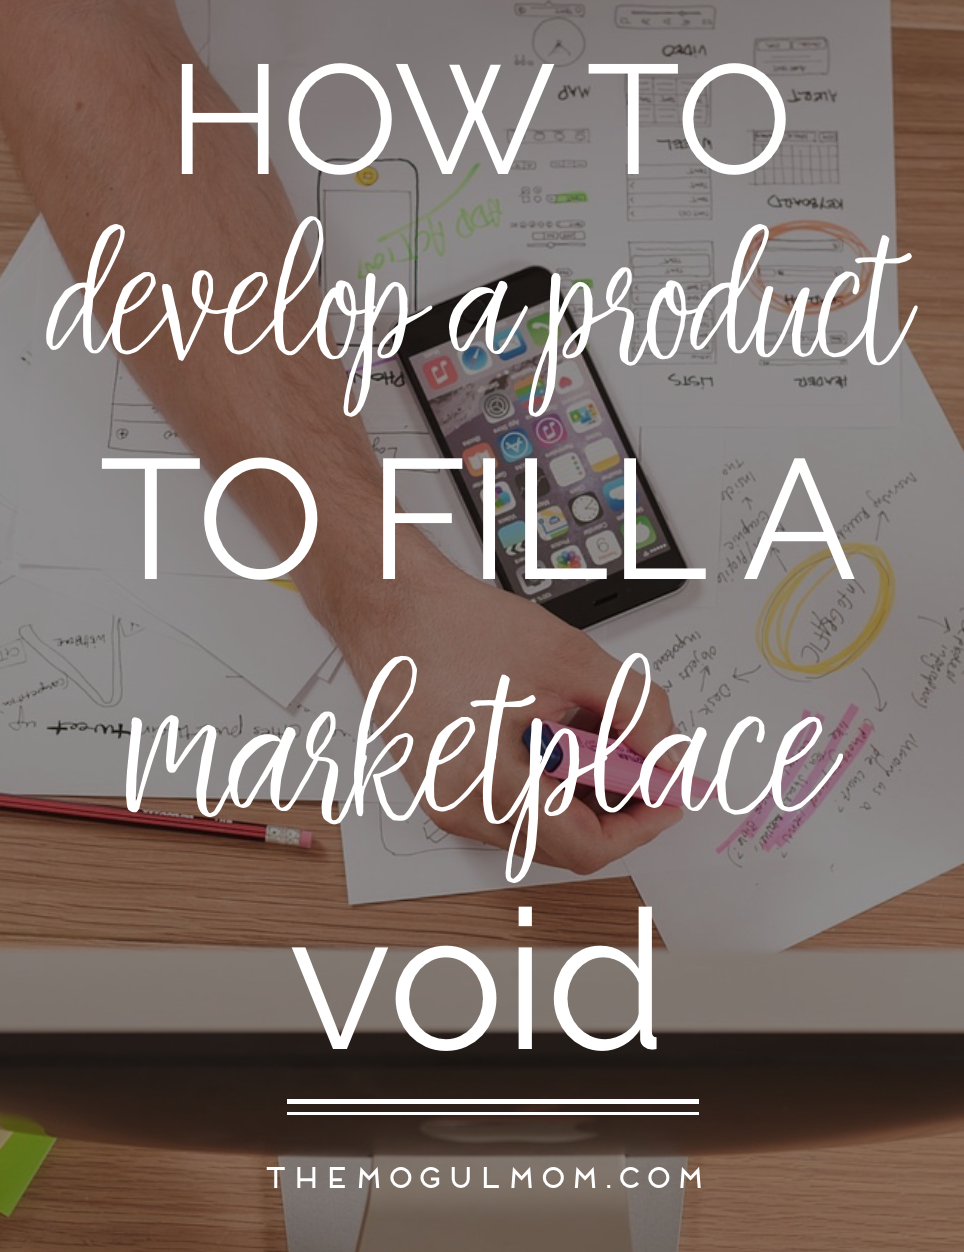 How To Develop A Product To Fill A Marketplace Void